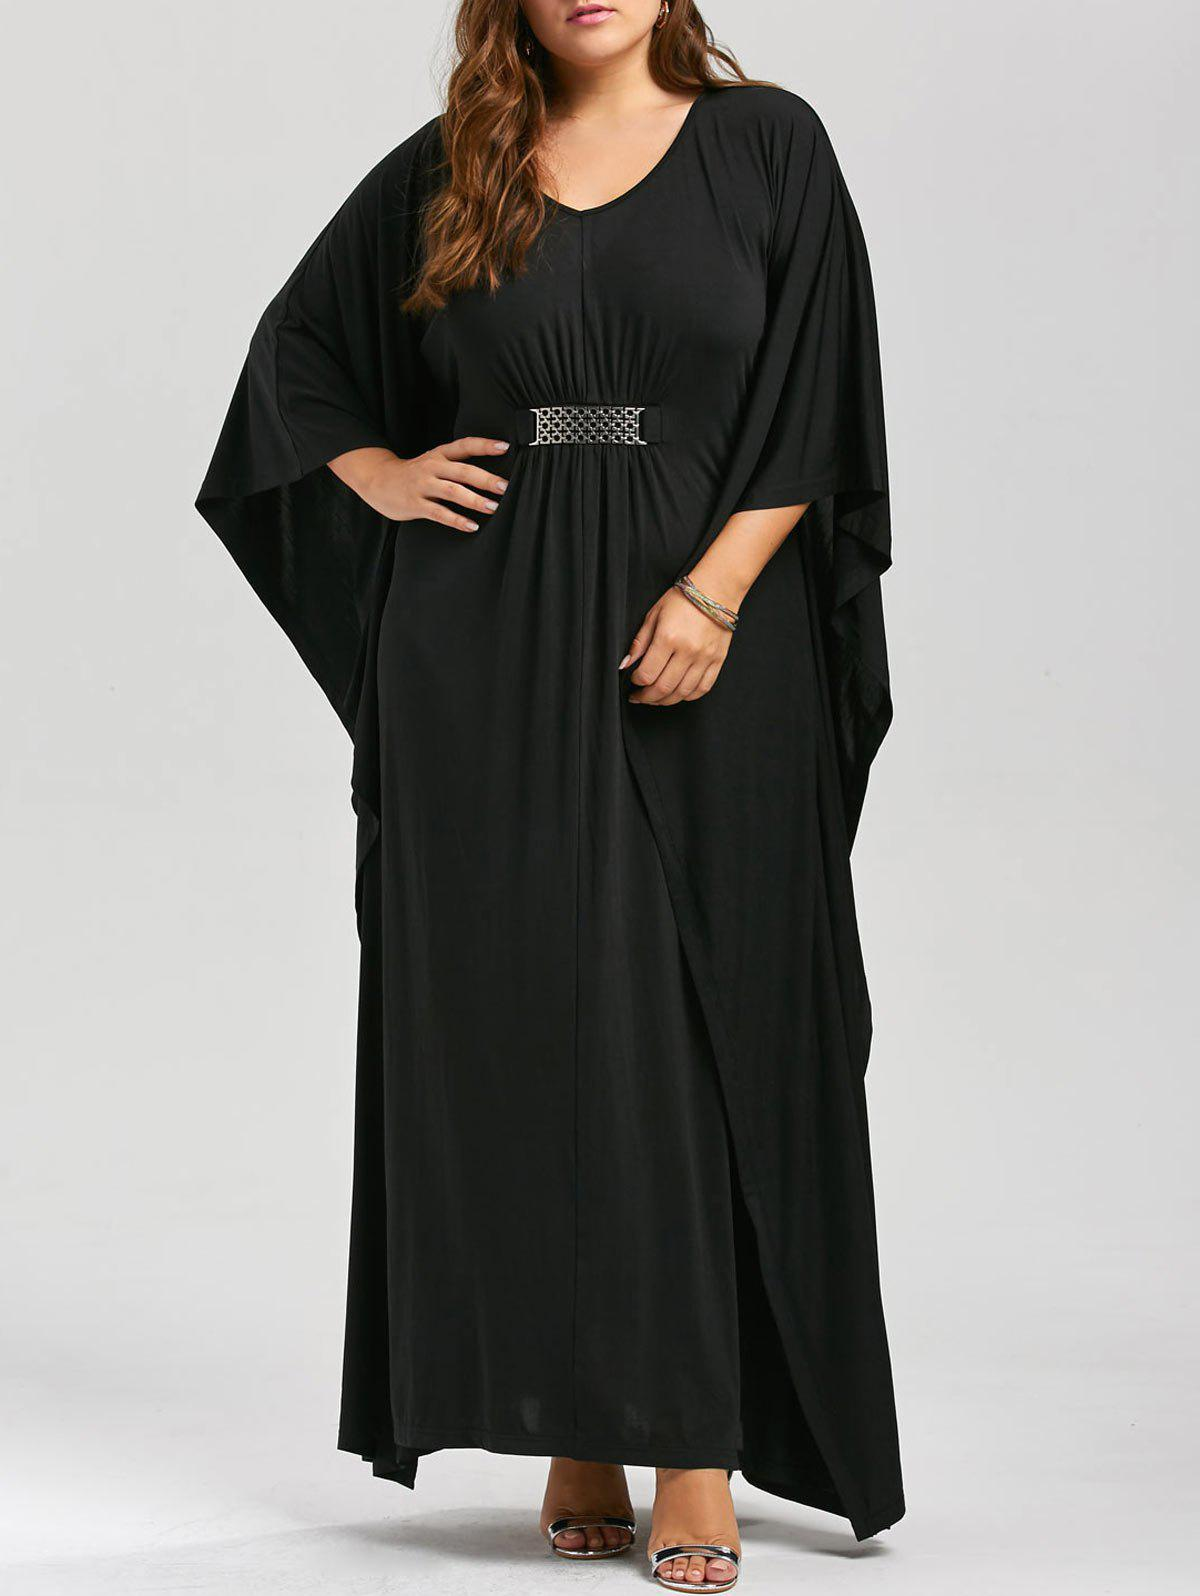 7b59e5e2650 Kaftan Maxi Dress Evening Gown